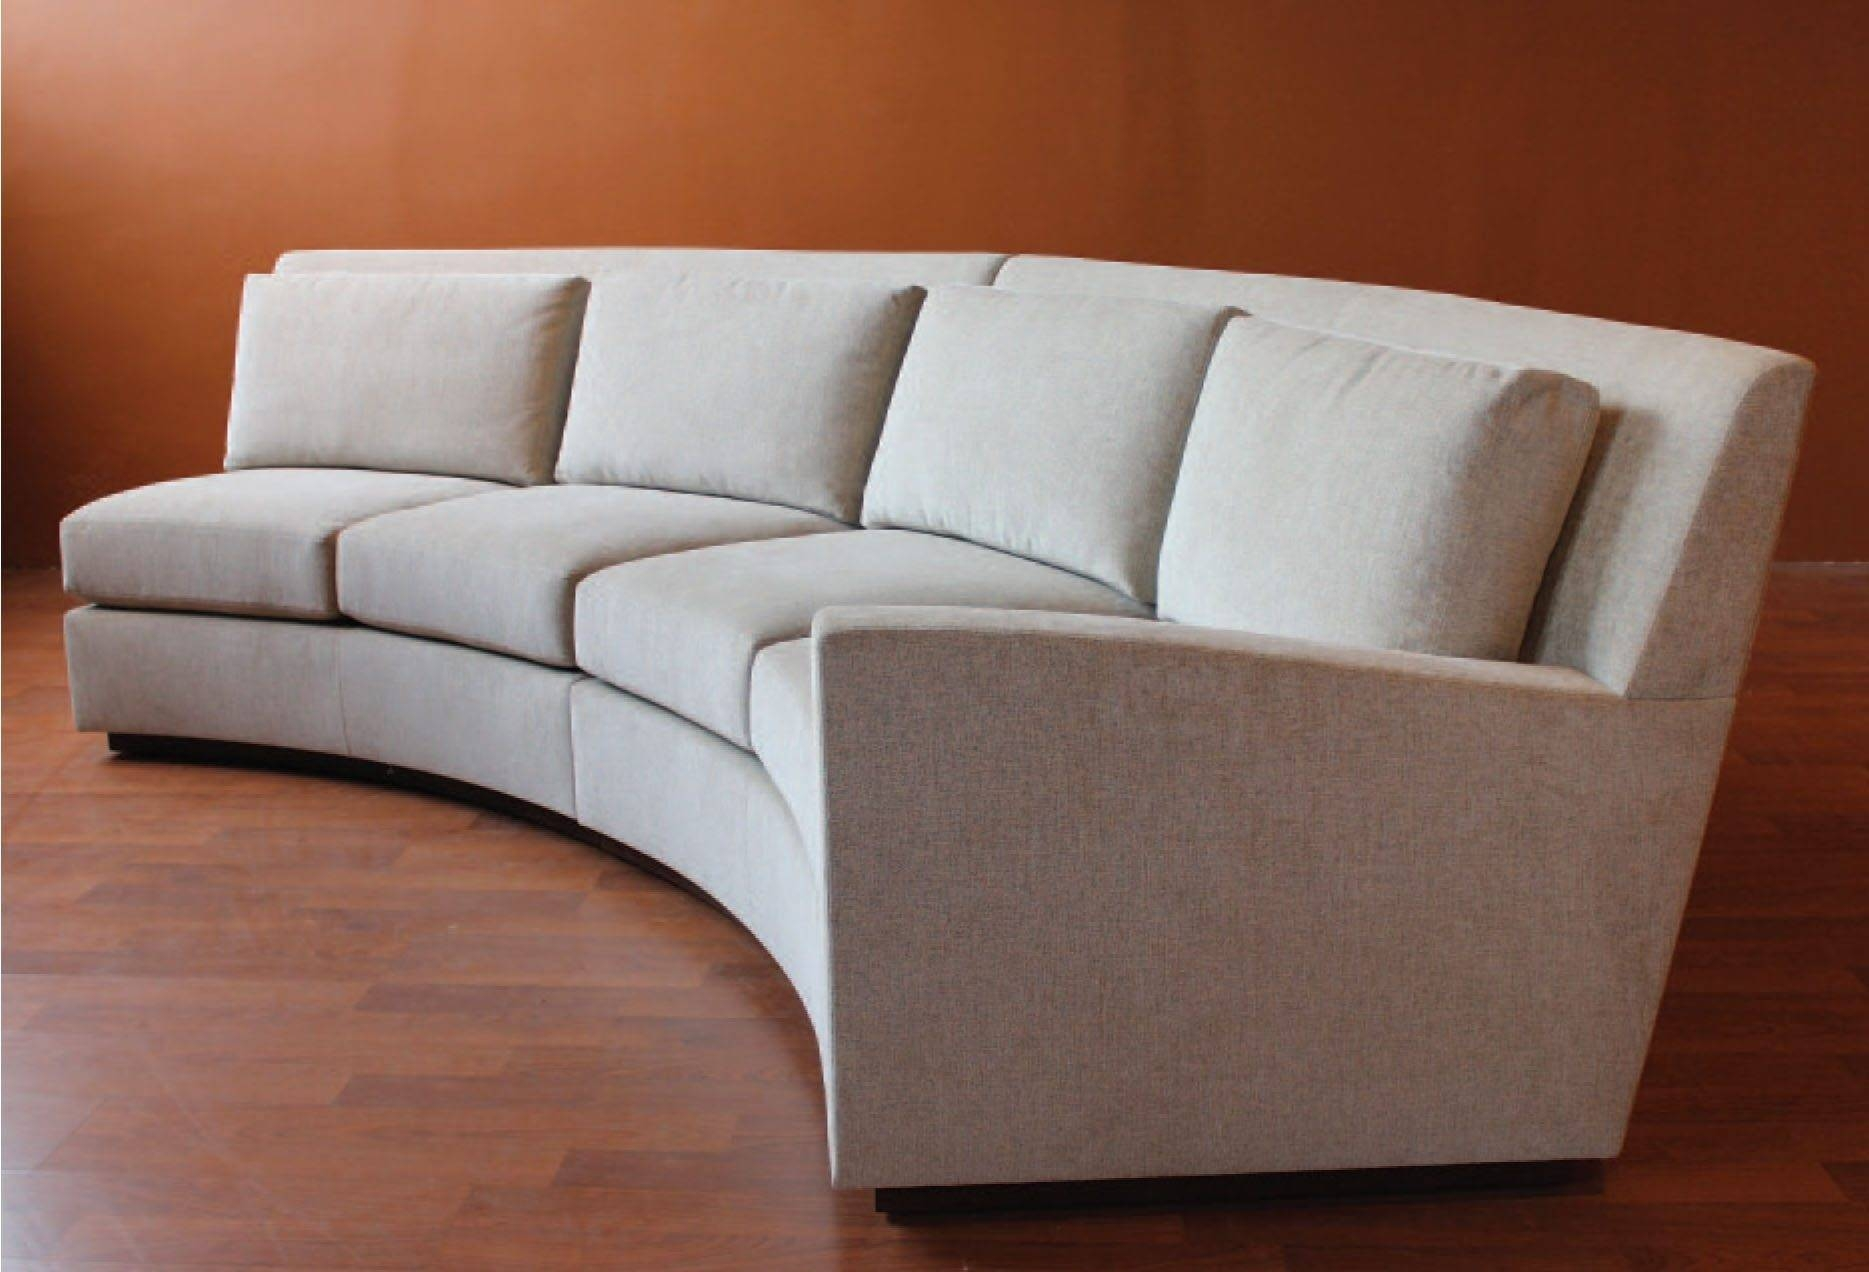 Furniture: Alluring Unique Curved Couches With Classic Design Home regarding Round Sectional Sofa Bed (Image 10 of 25)